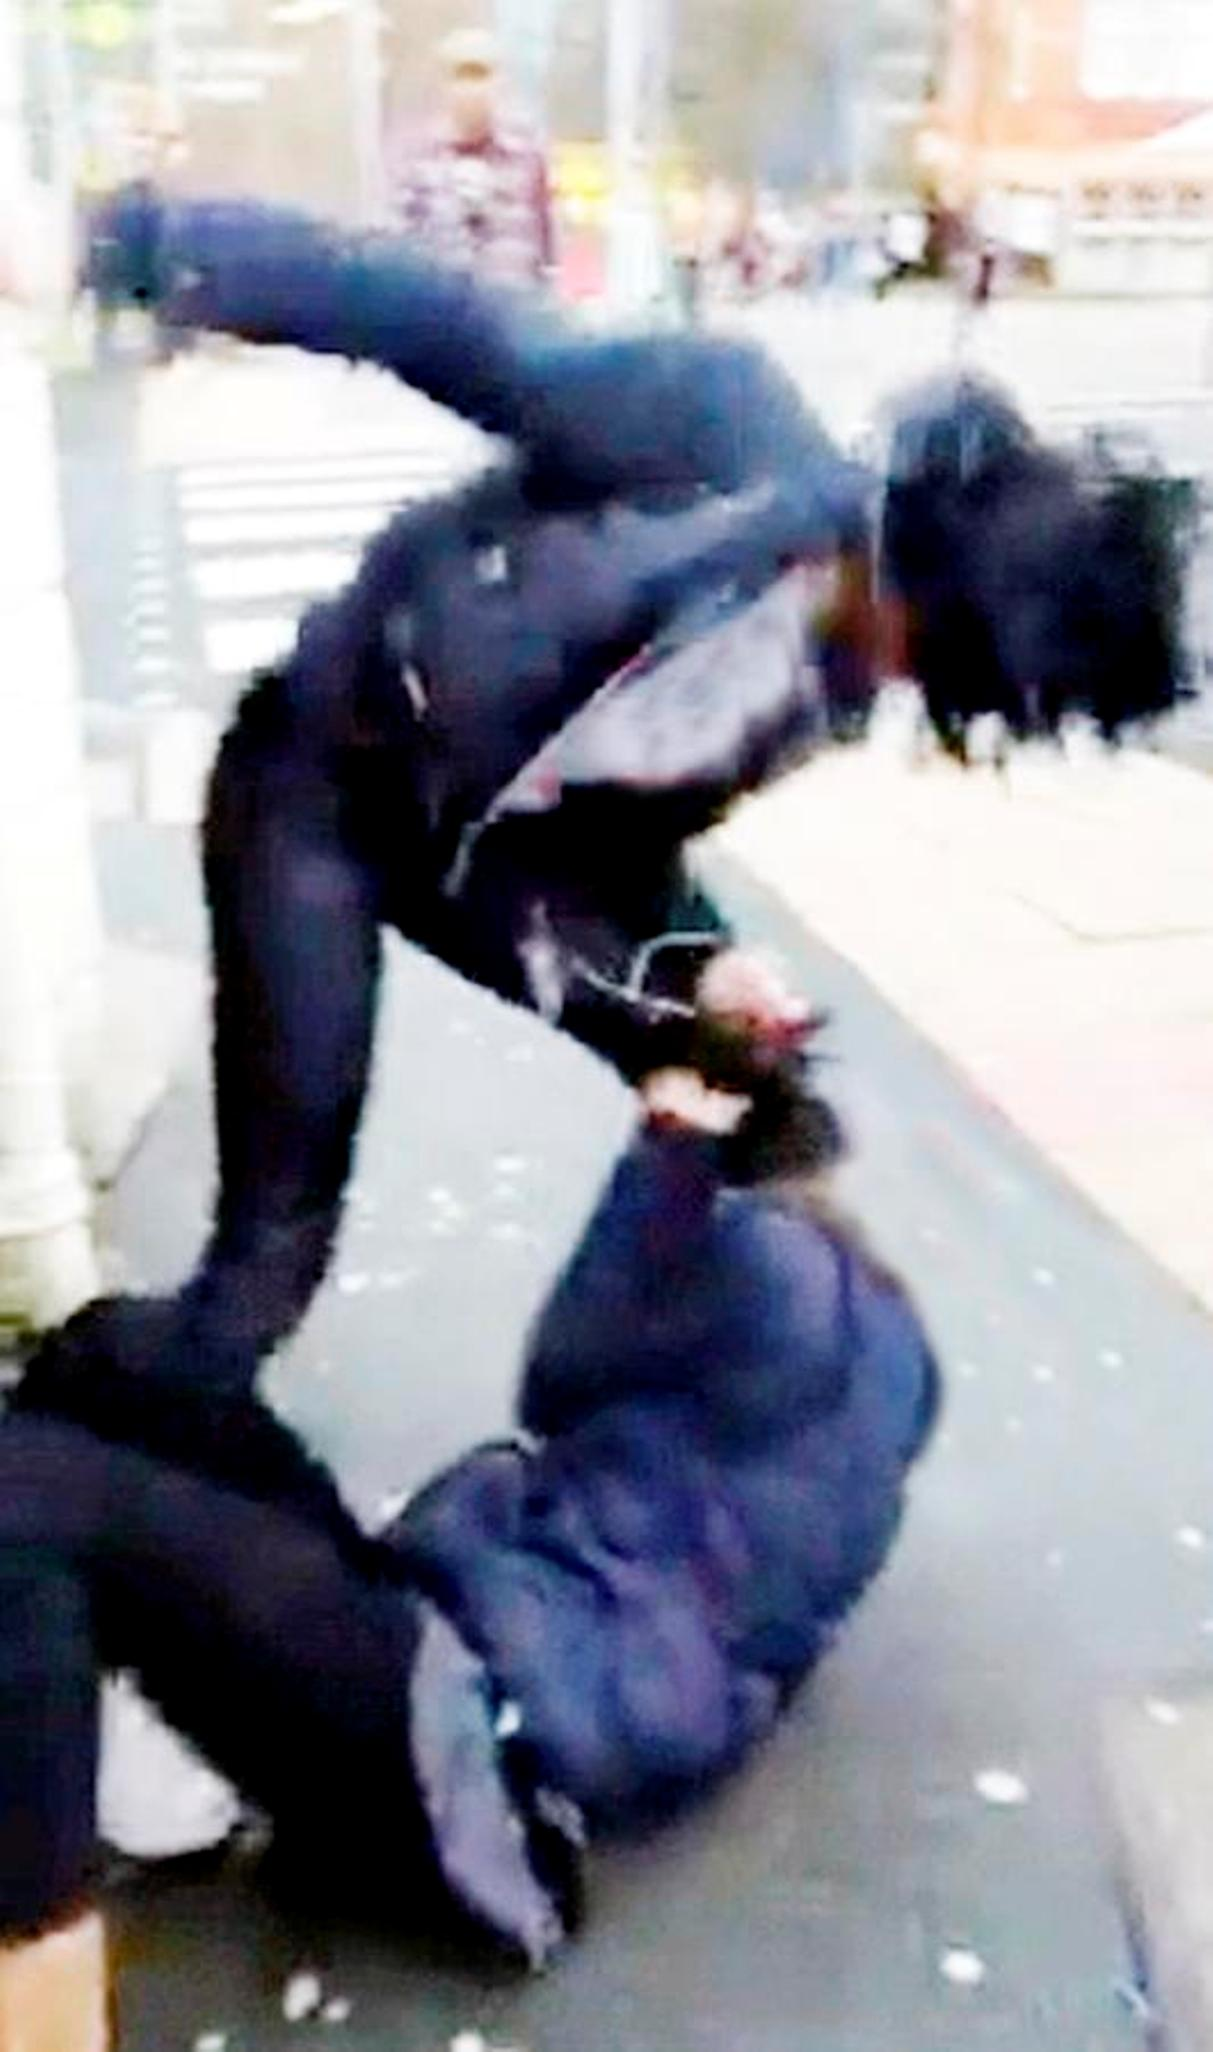 Three teenagers released on bail after filmed attack on girl in Blackburn